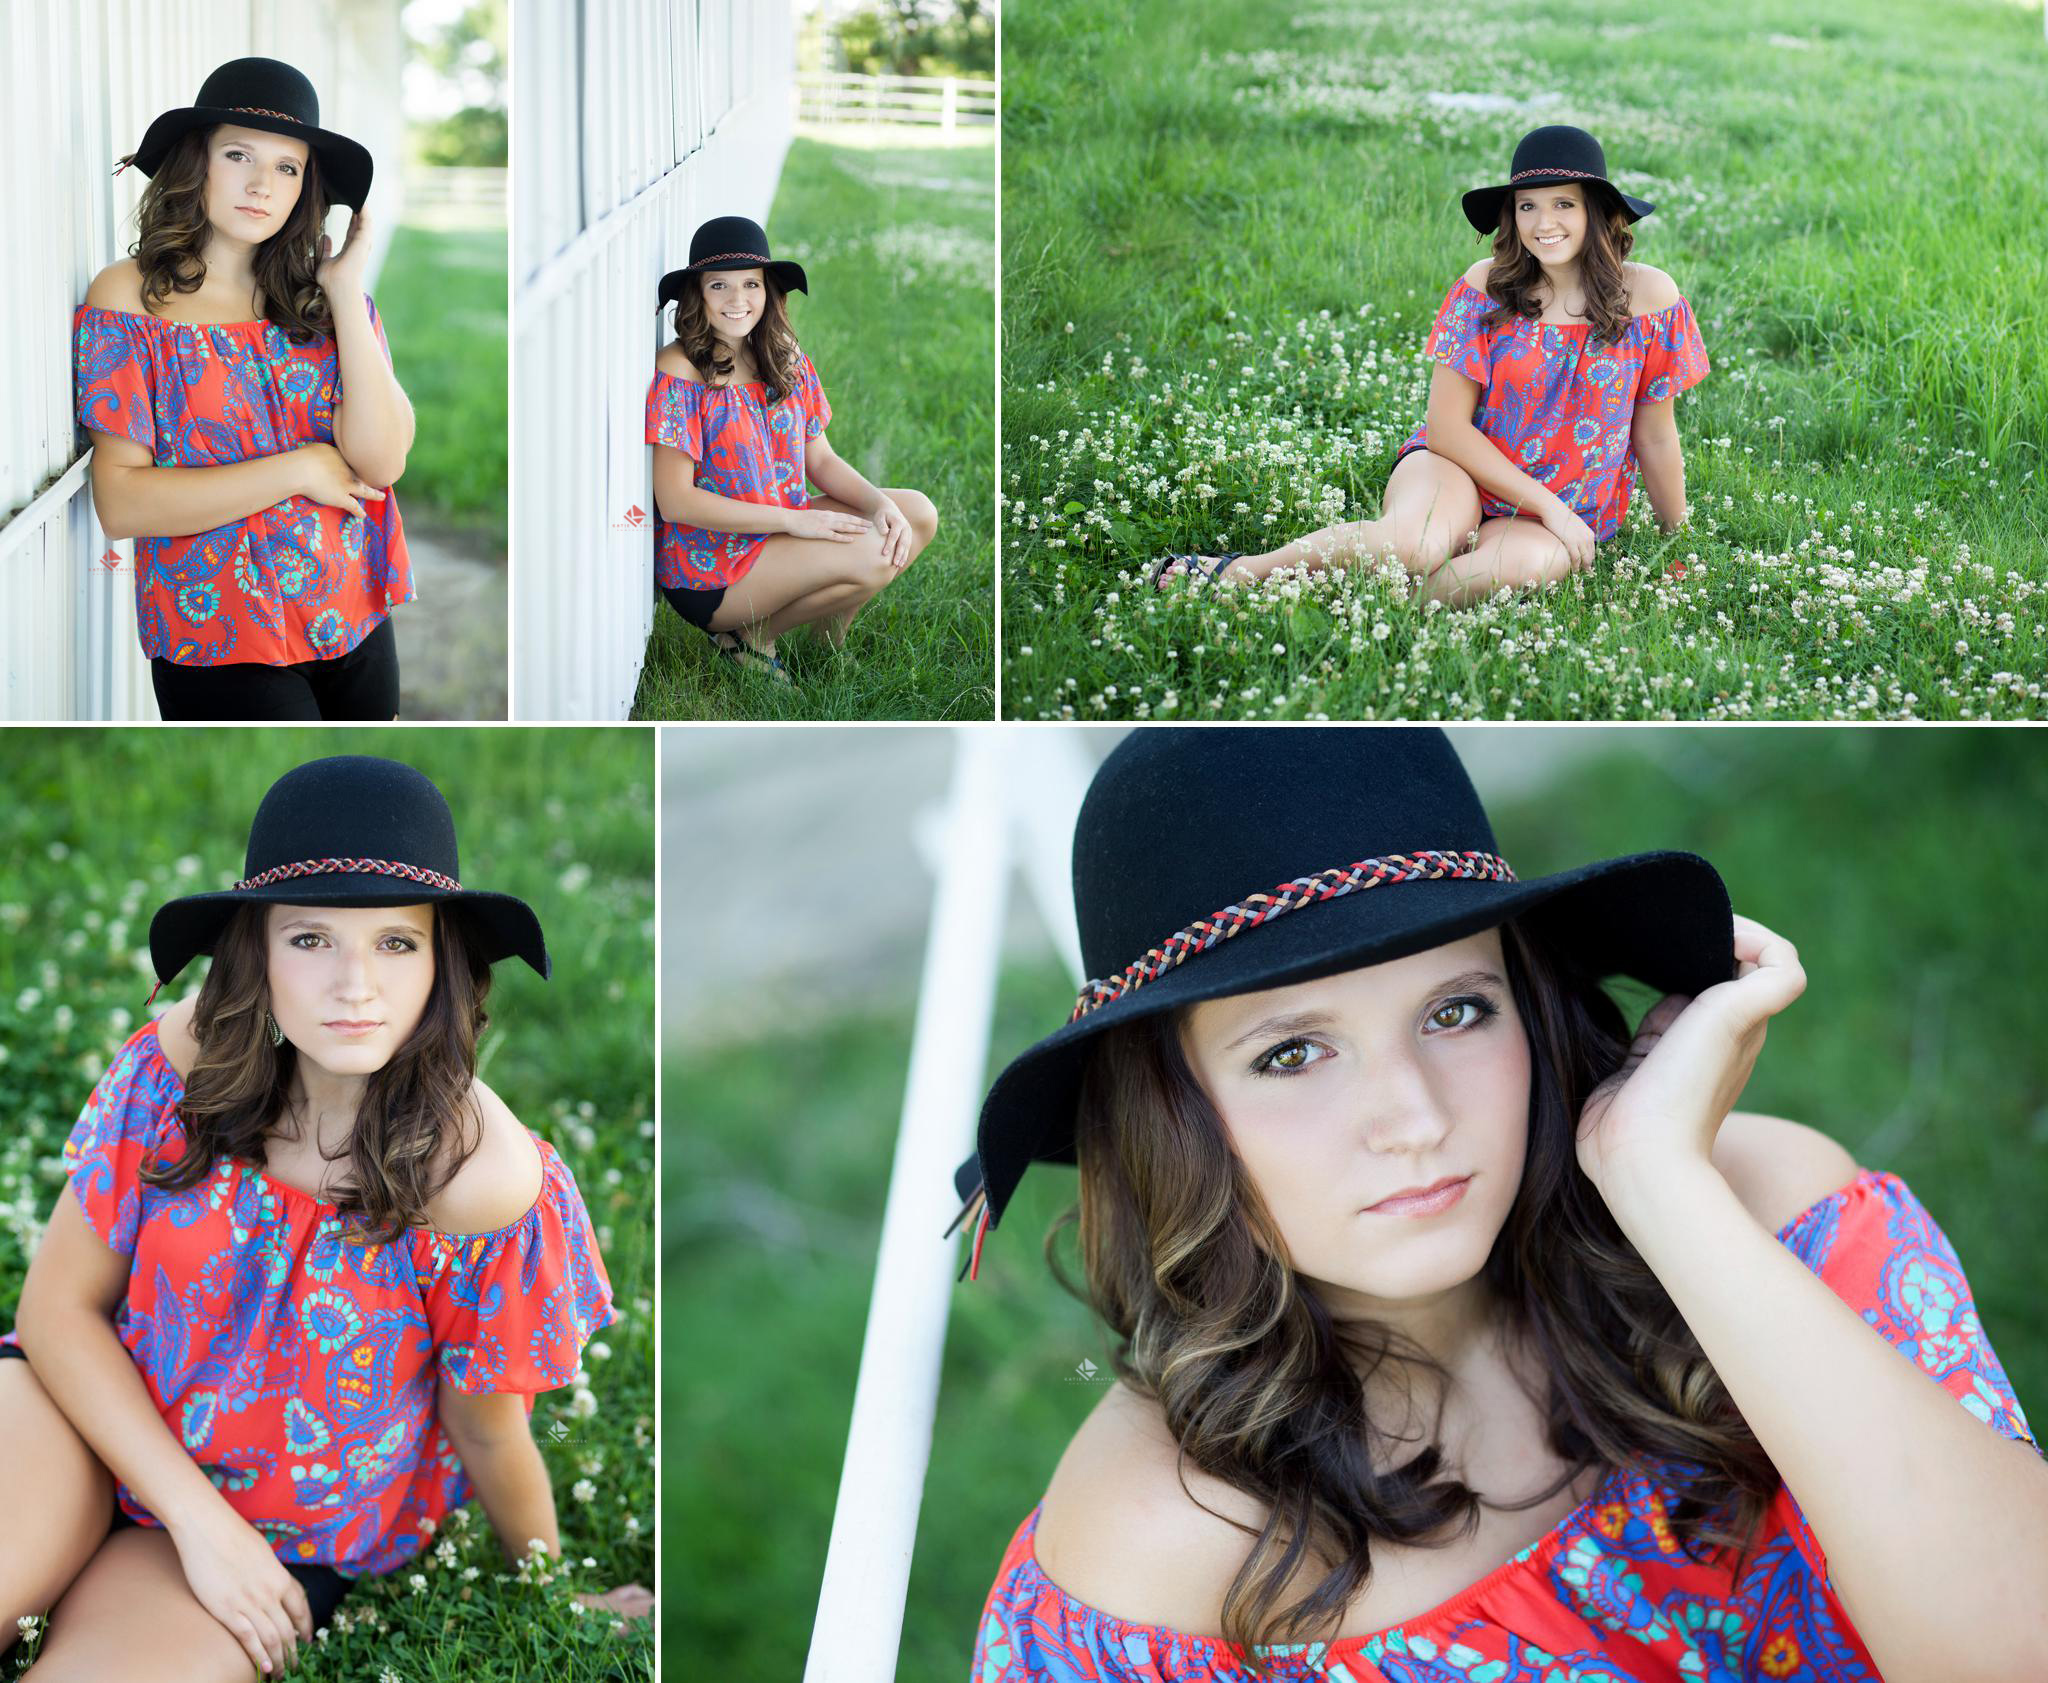 brunette senior girl in red paisely patterned shirt with black hat sitting in grass and leaning against white building